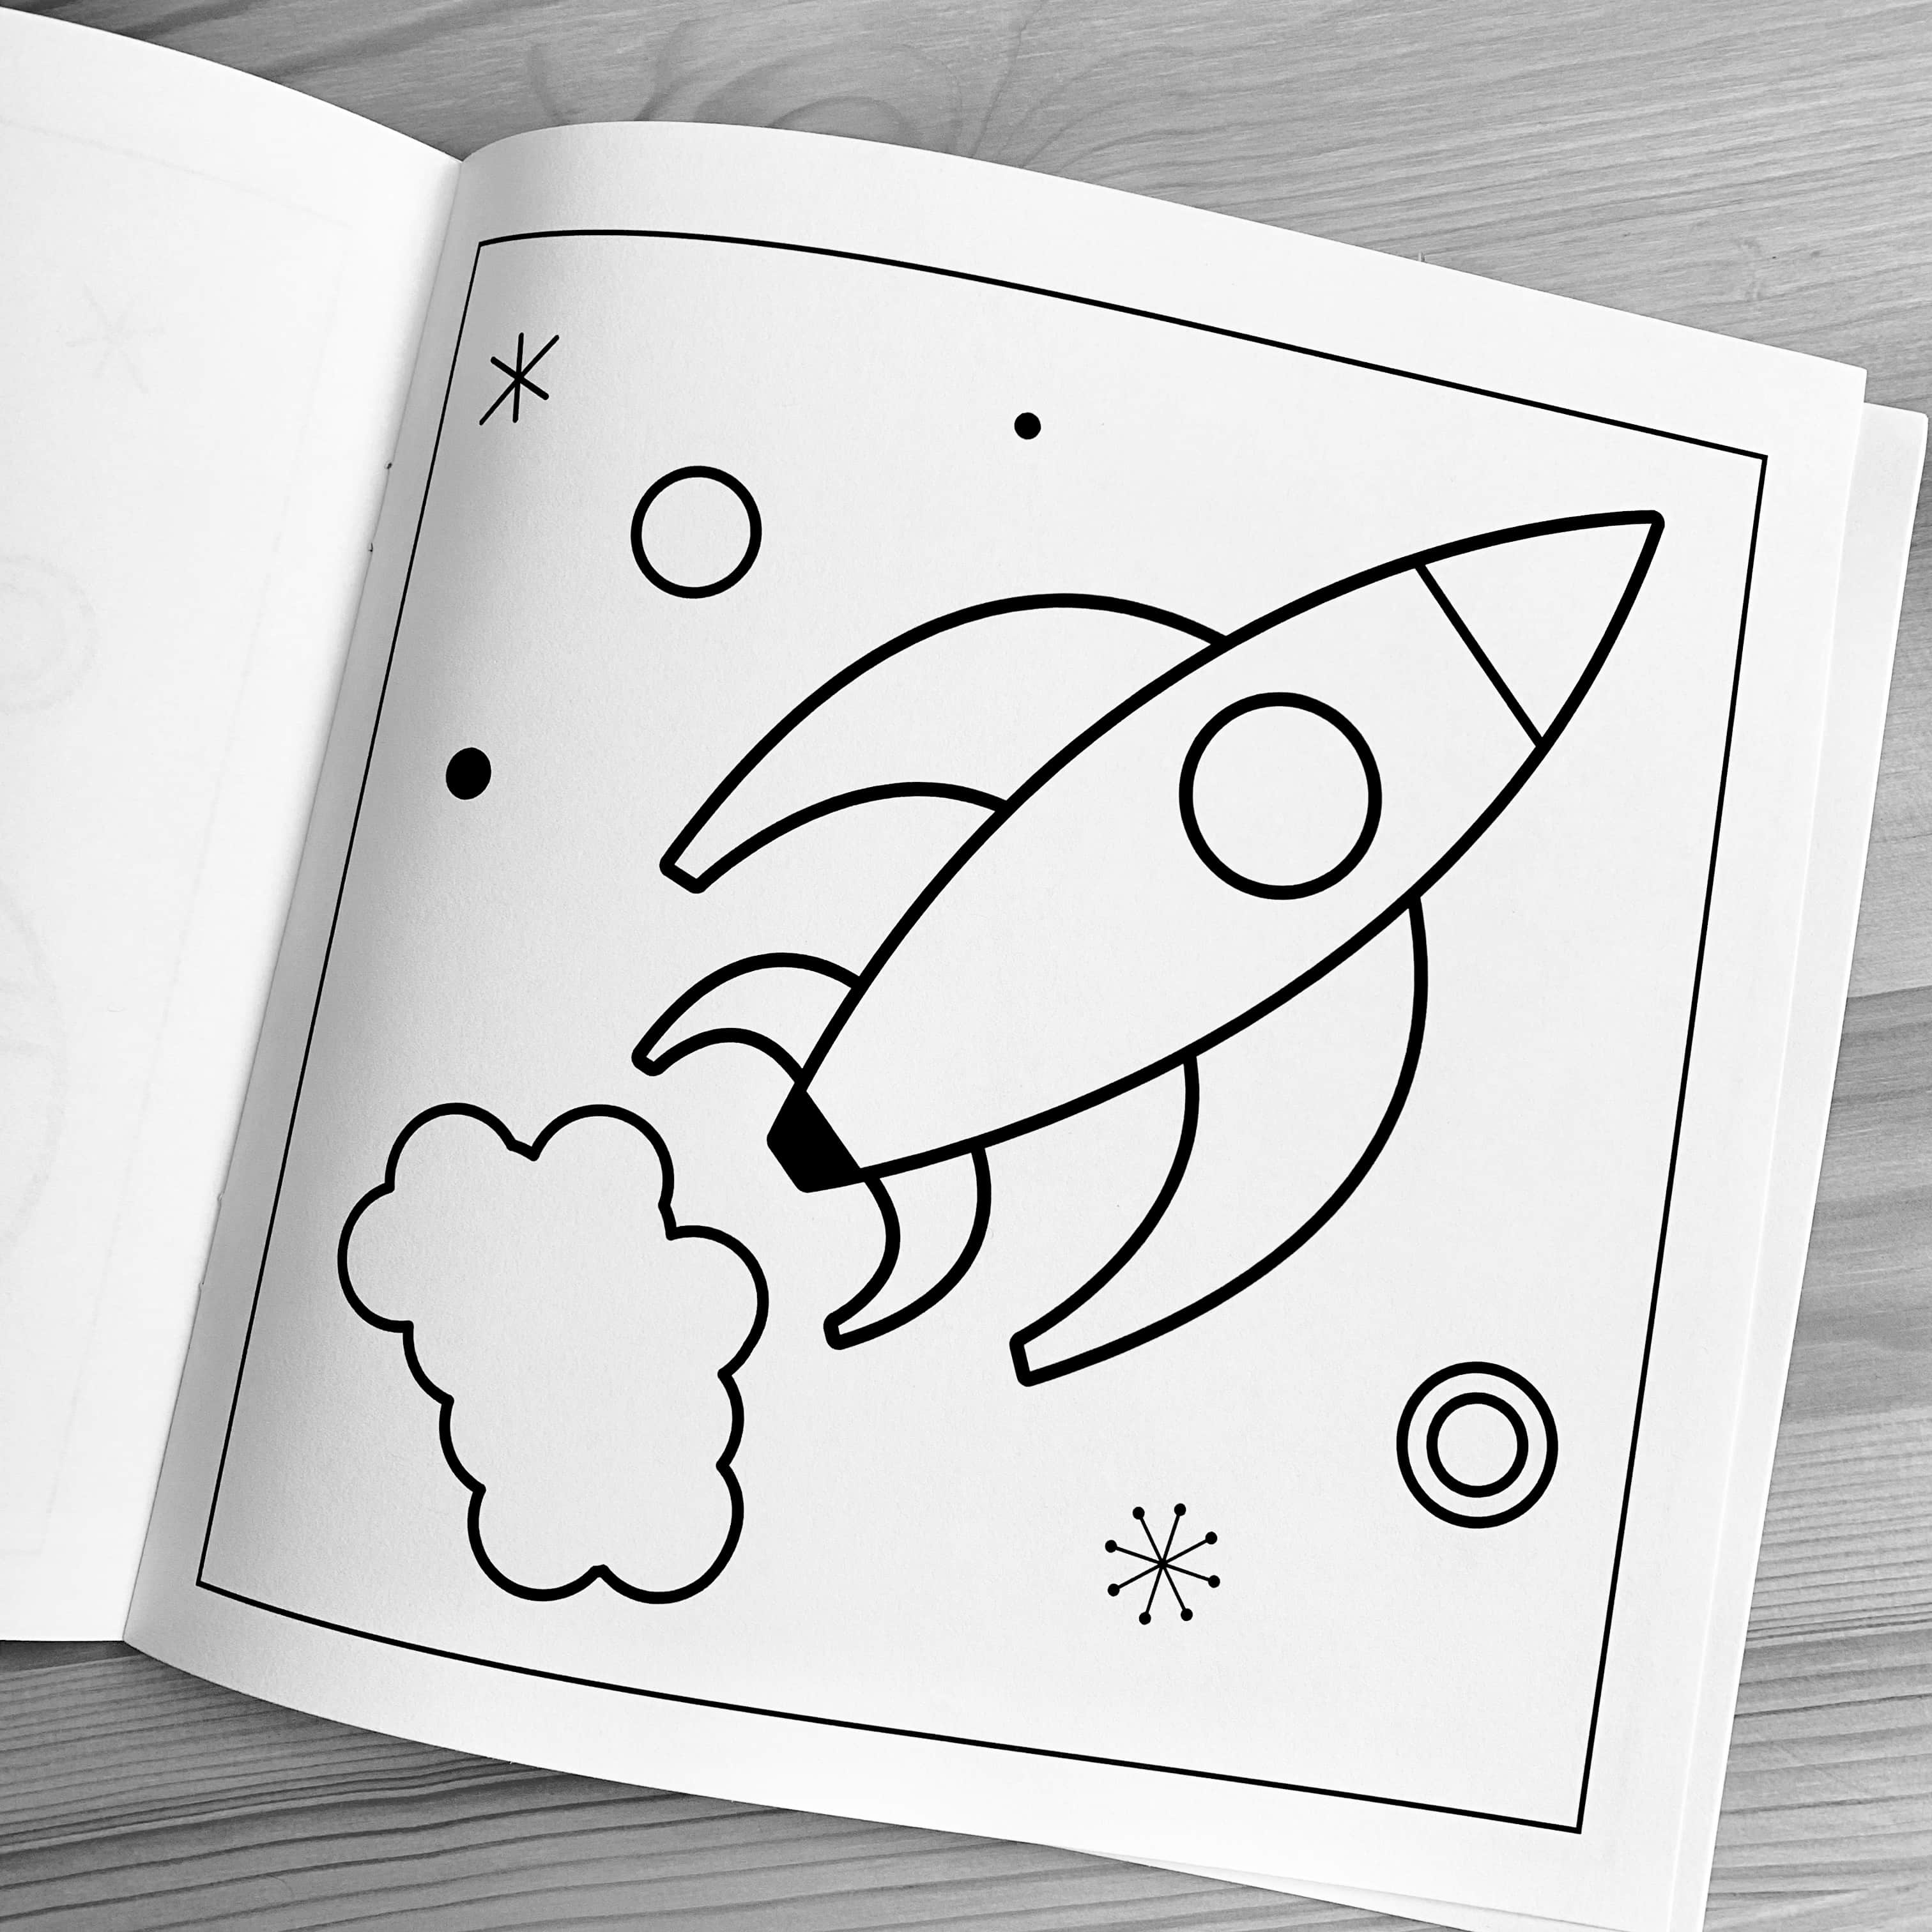 Photo of rocket print inside a coloring book